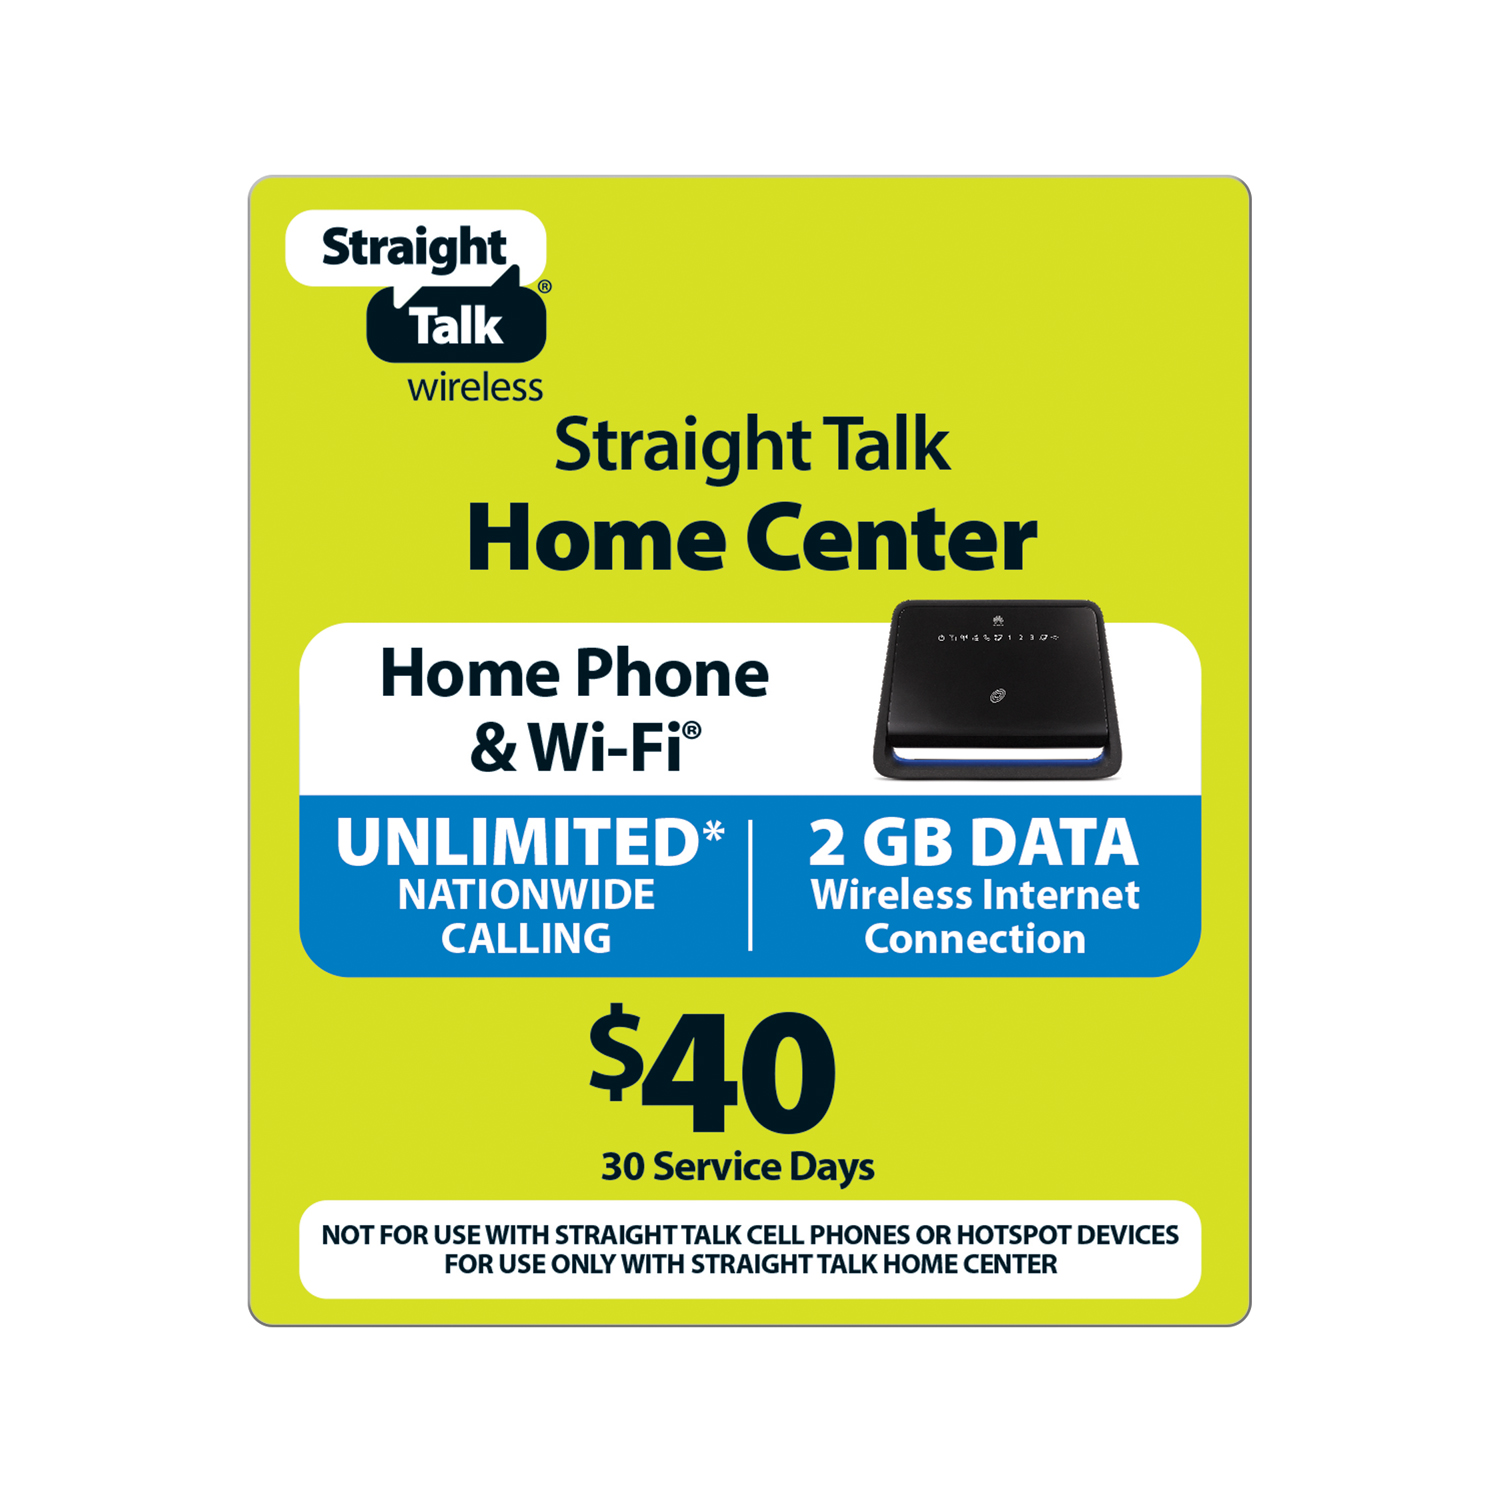 Straight Talk $40 Wireless Home Phone - Unlimited Talk and 2 GB/30 Access Days (Email Delivery)